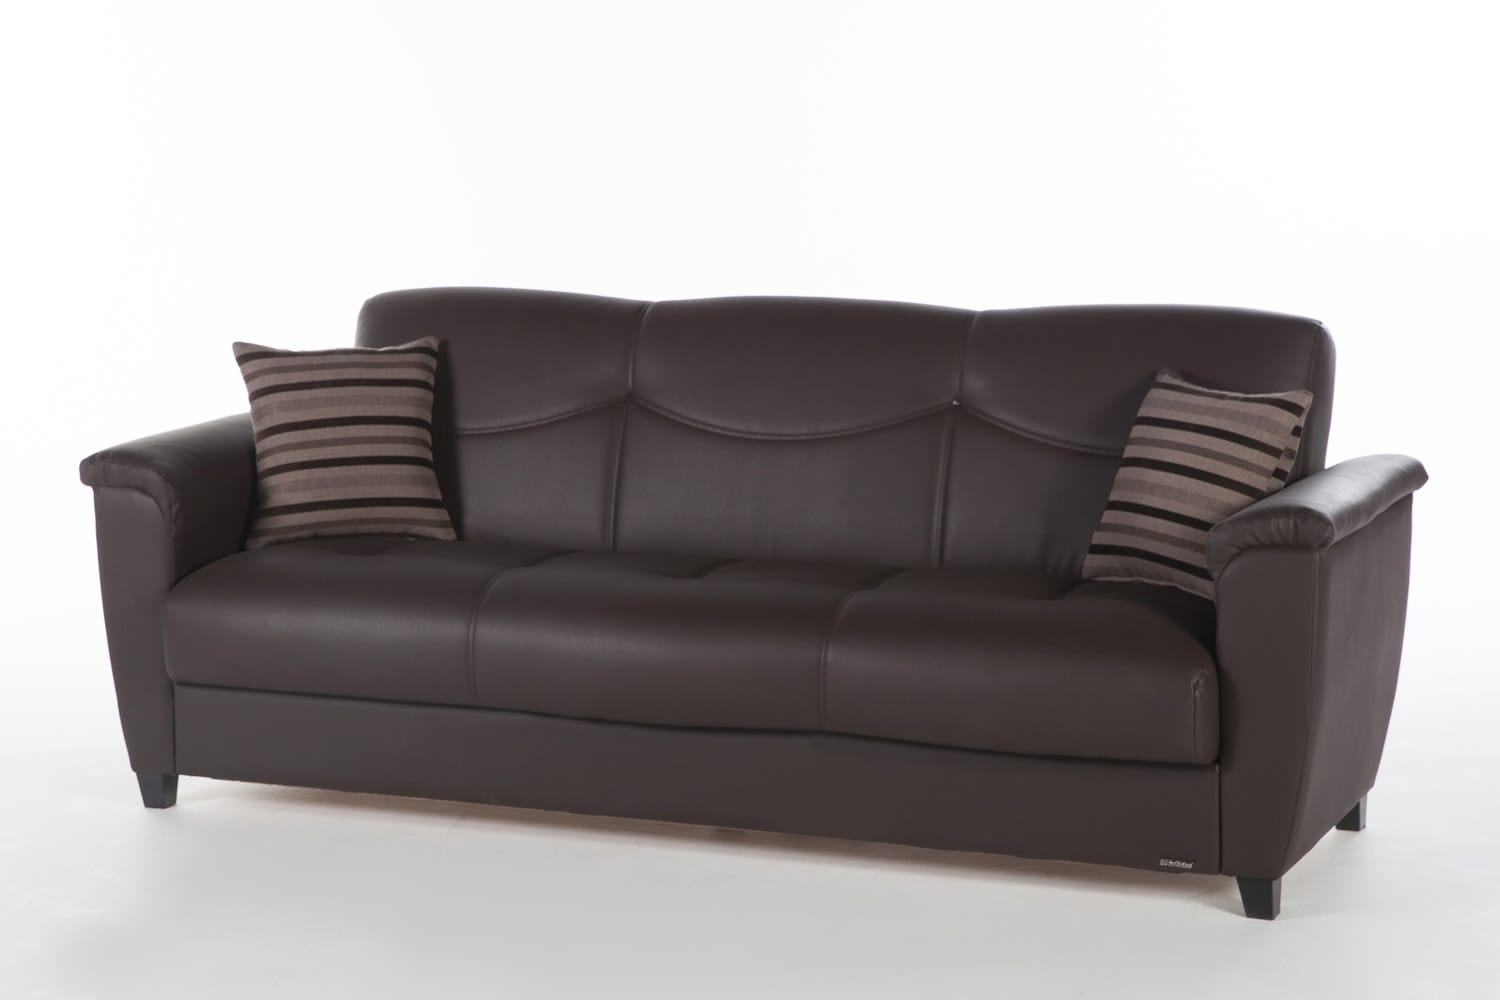 Sofa Barato Vintage Aspen Santa Glory Dark Brown Convertible Sofa Bed By Istikbal Furniture